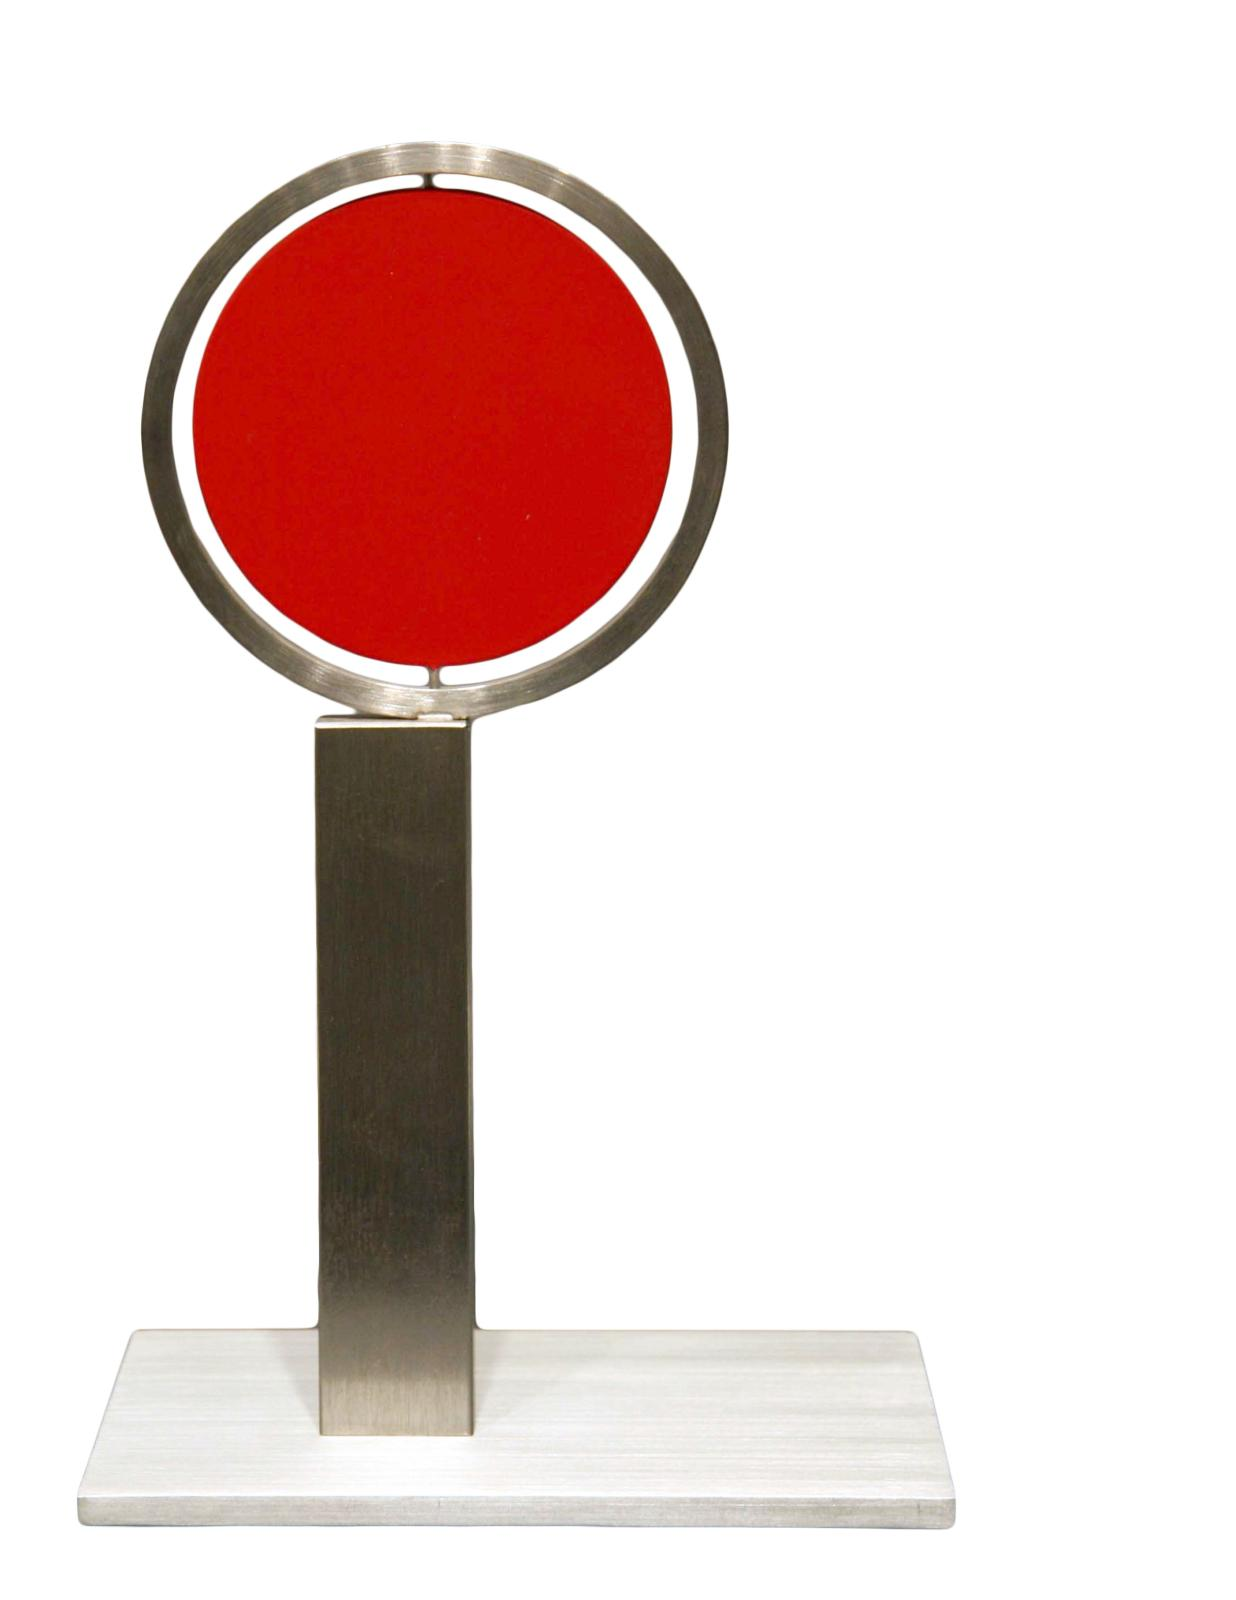 Roger Phillips, Disc on Column (maquette), 2004